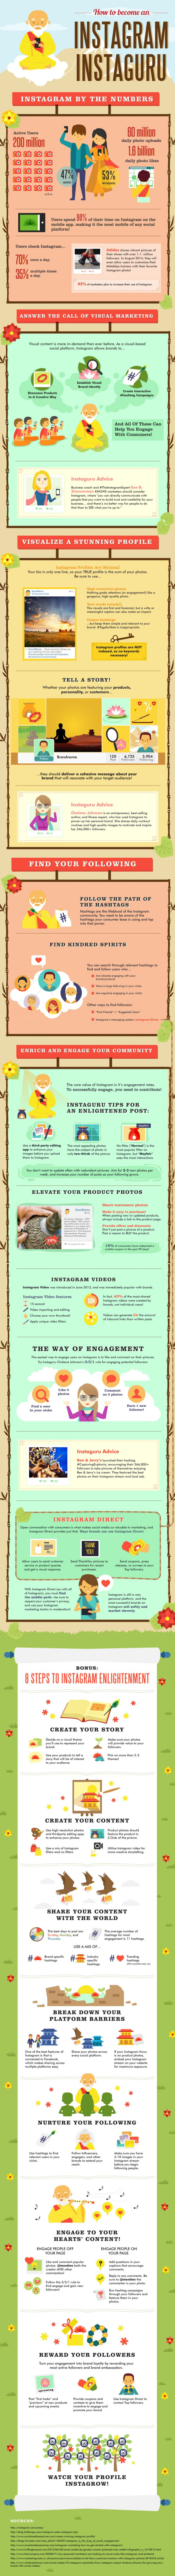 """Instagram-Marketing: 29 Tipps für mehr Engagement. (Quelle: <a href=""""http://www.jeffbullas.com/2015/01/10/29-tips-on-how-to-succeed-with-your-instagram-marketing-infographic/"""">Jeff Bullas</a>)"""